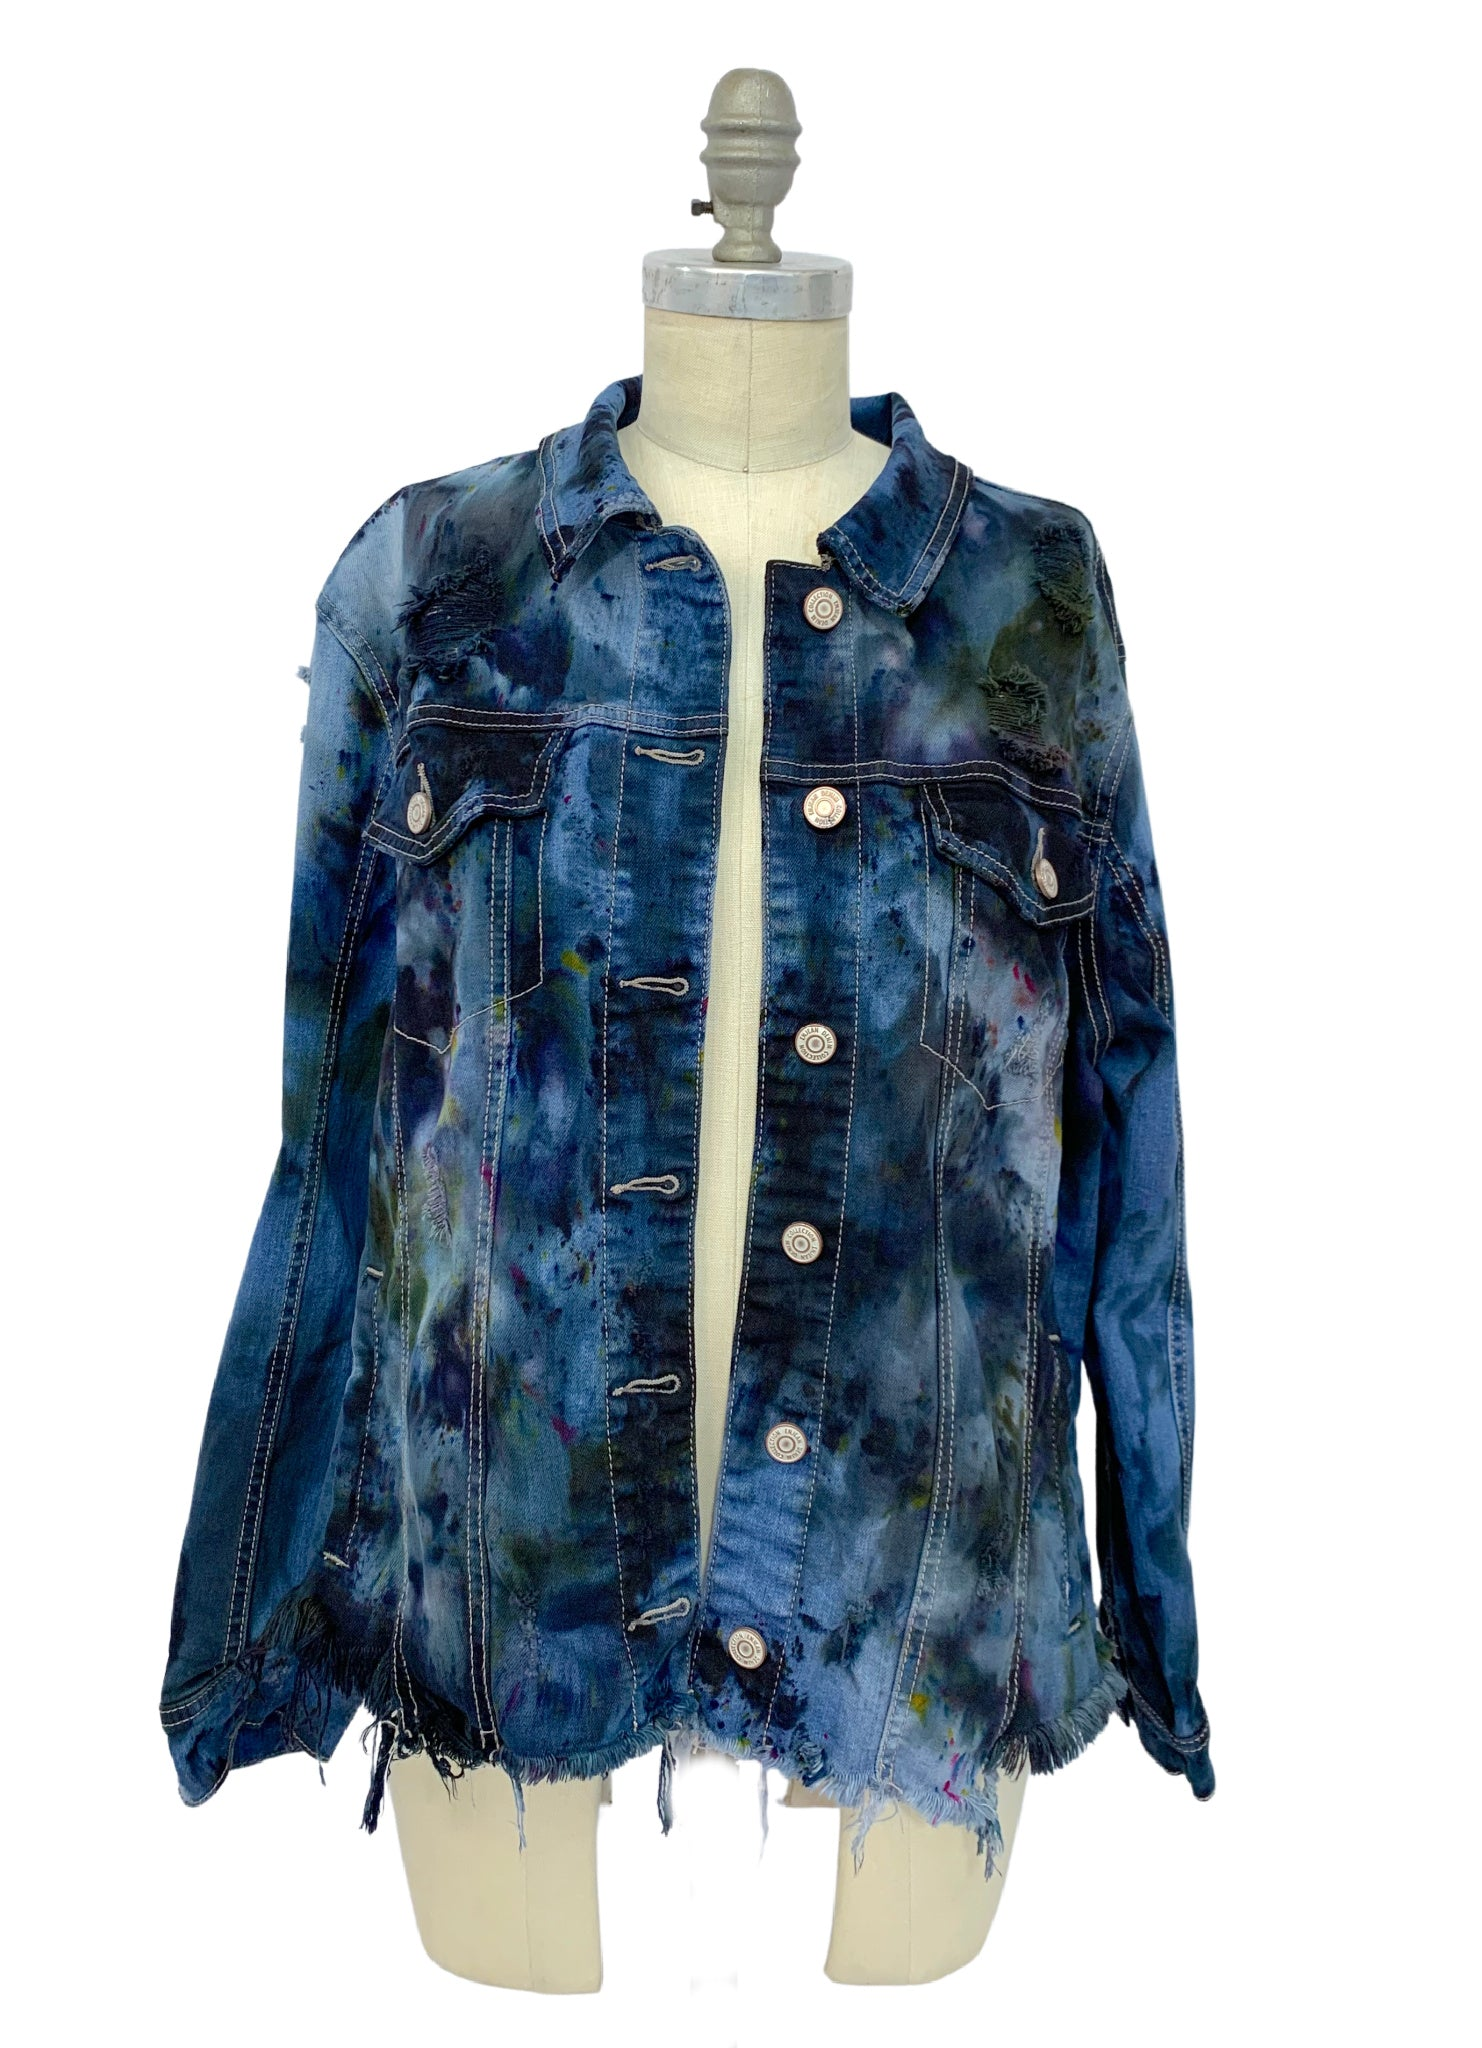 Hand-Dyed Distressed Denim Jacket in